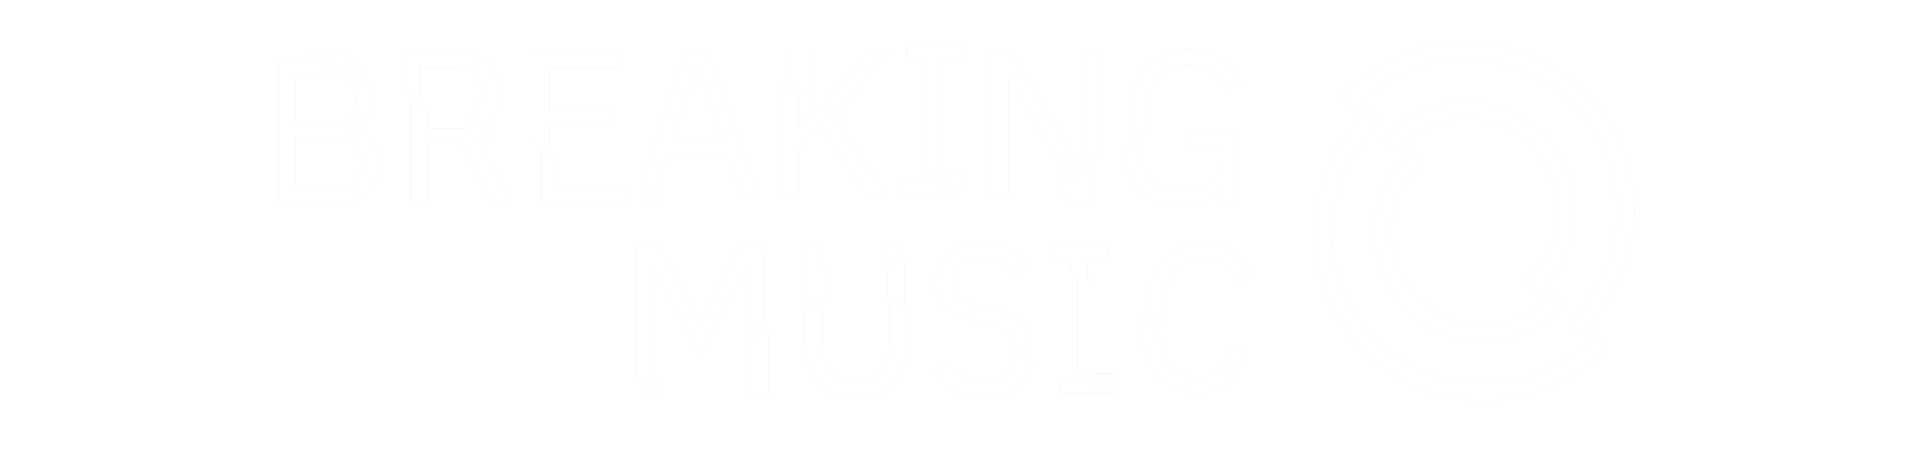 Breaking Music